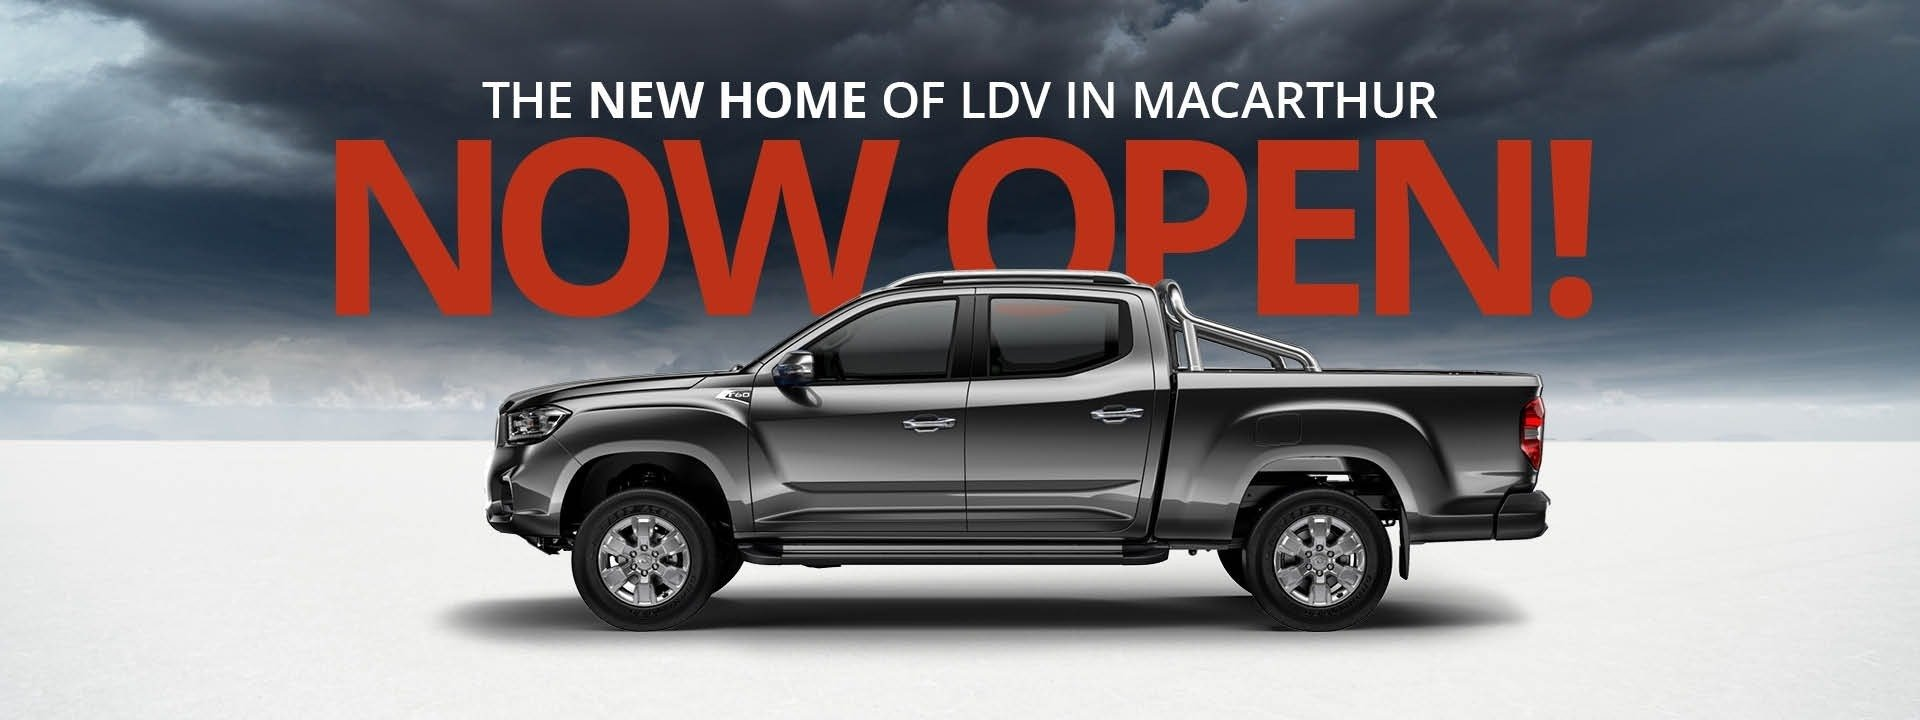 Macarthur LDV Now Open